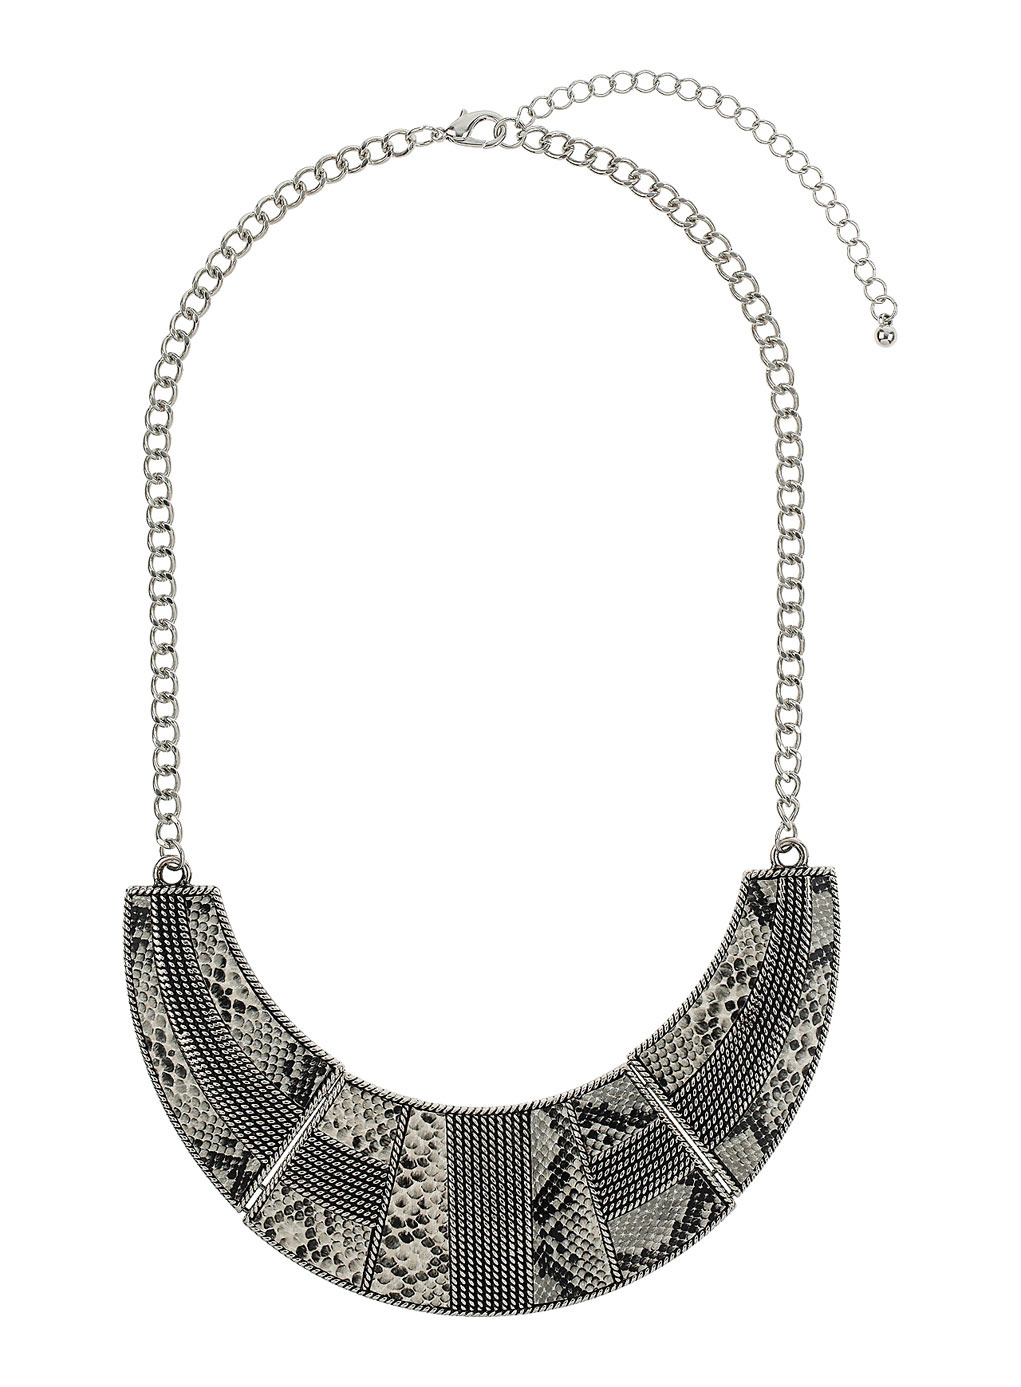 Snake Print Collar Necklace - predominant colour: silver; secondary colour: charcoal; occasions: evening, creative work; length: mid; size: large/oversized; material: chain/metal; finish: metallic; style: bib/statement; season: s/s 2014